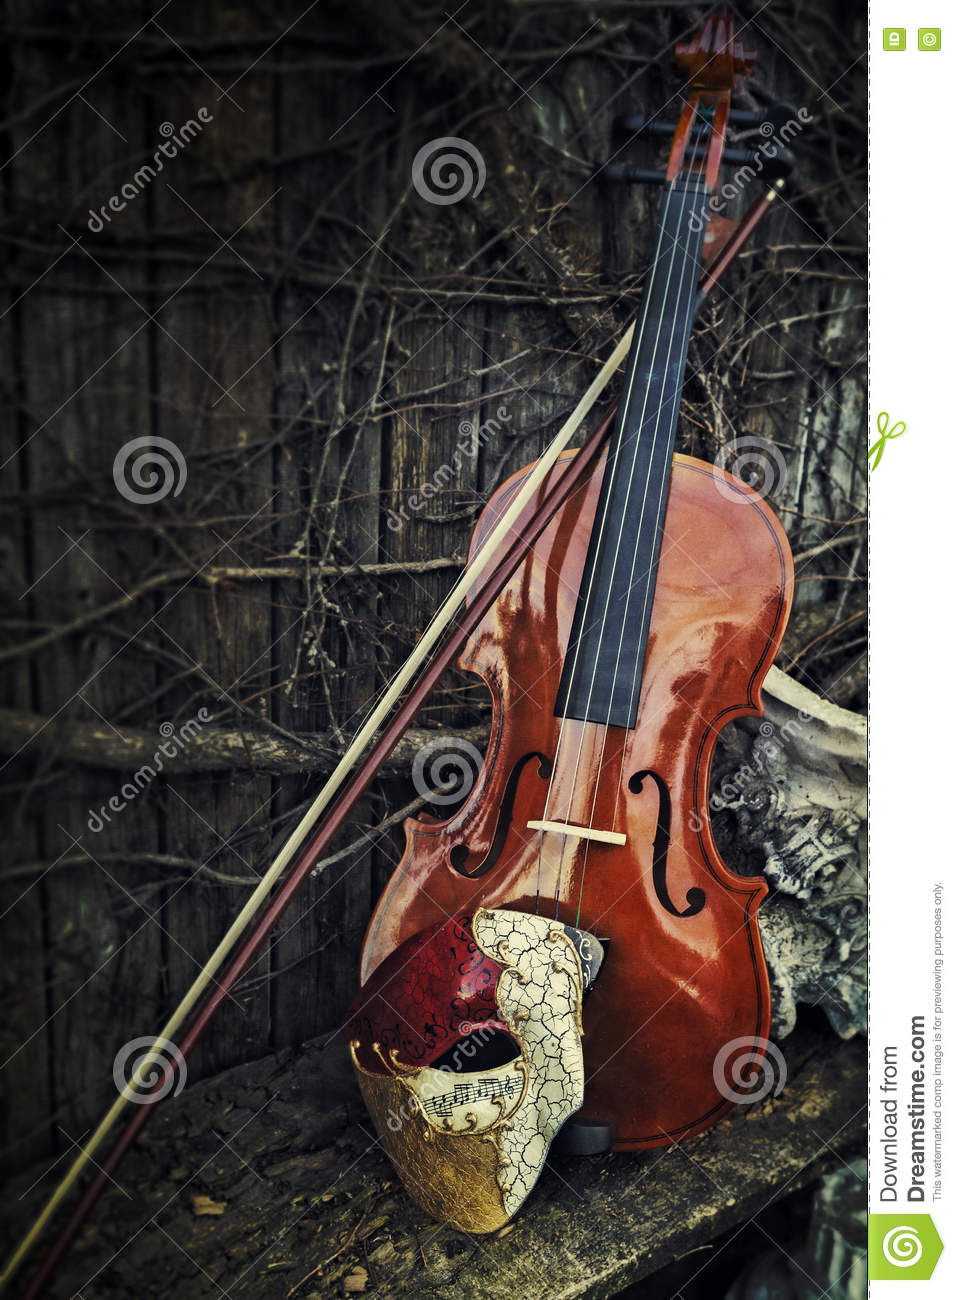 Masquerade - Phantom Of The Opera Mask With Violin Stock Image